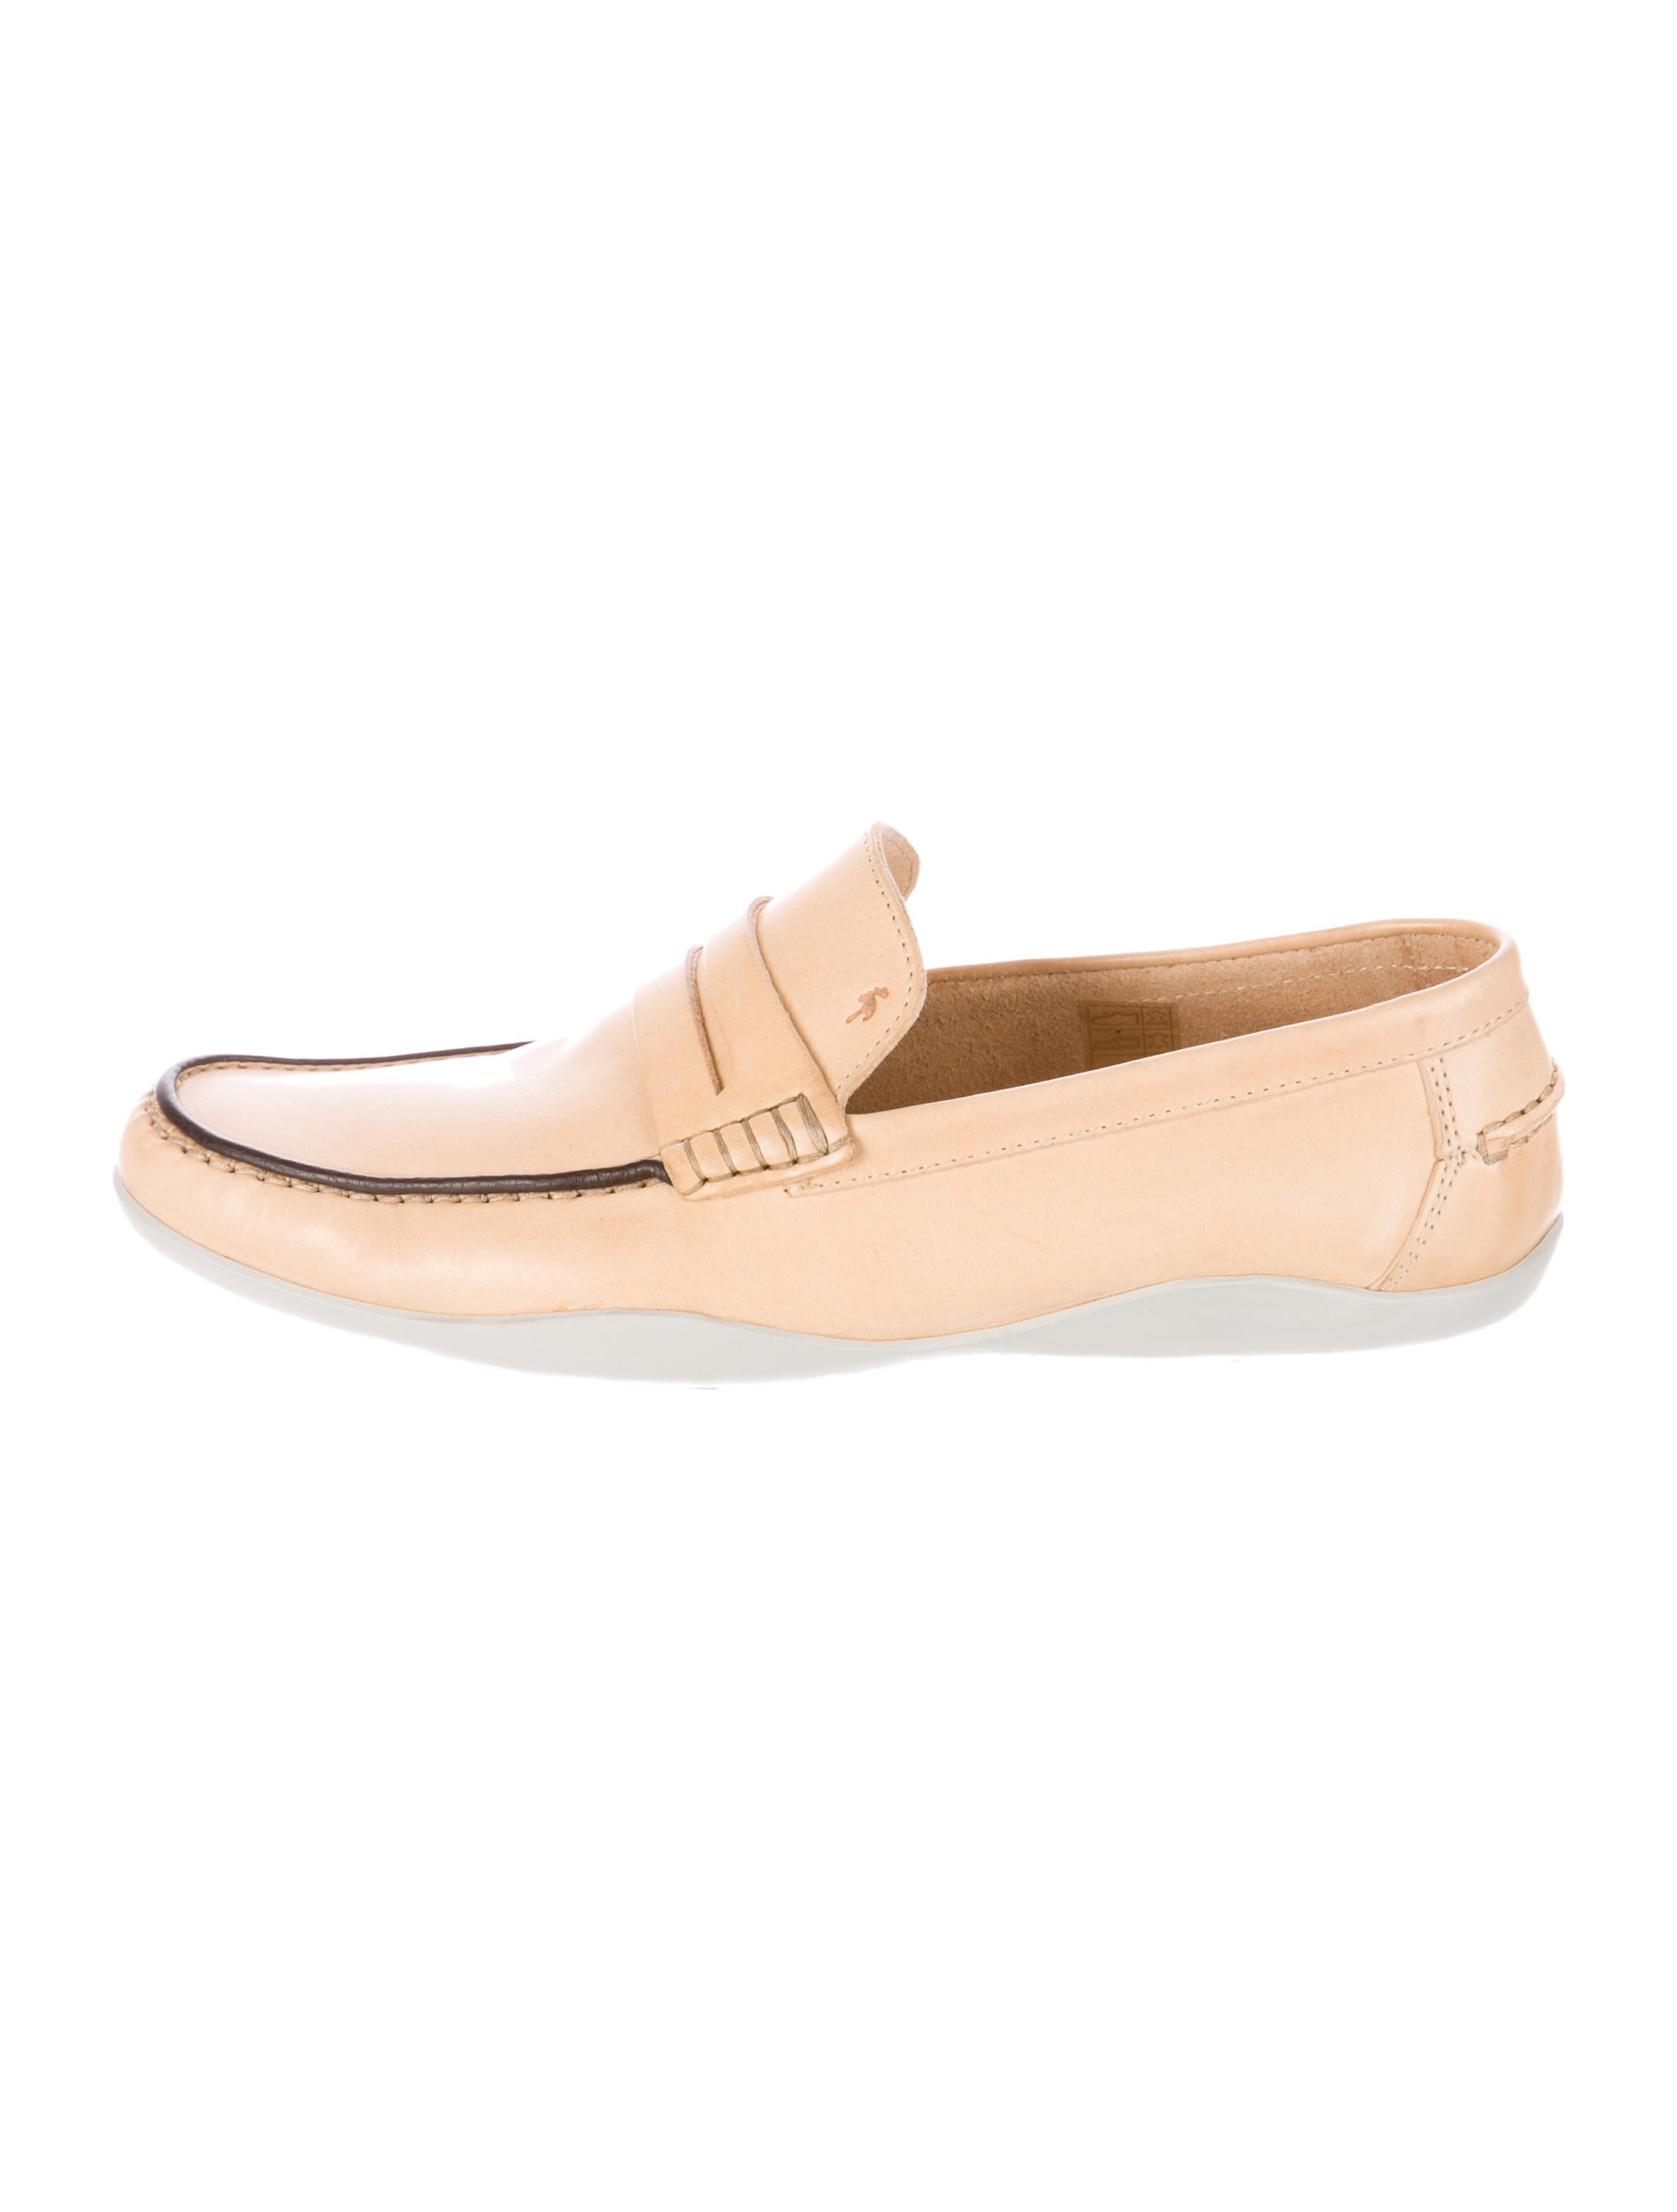 harrys of loafers shoes whrln20017 the realreal